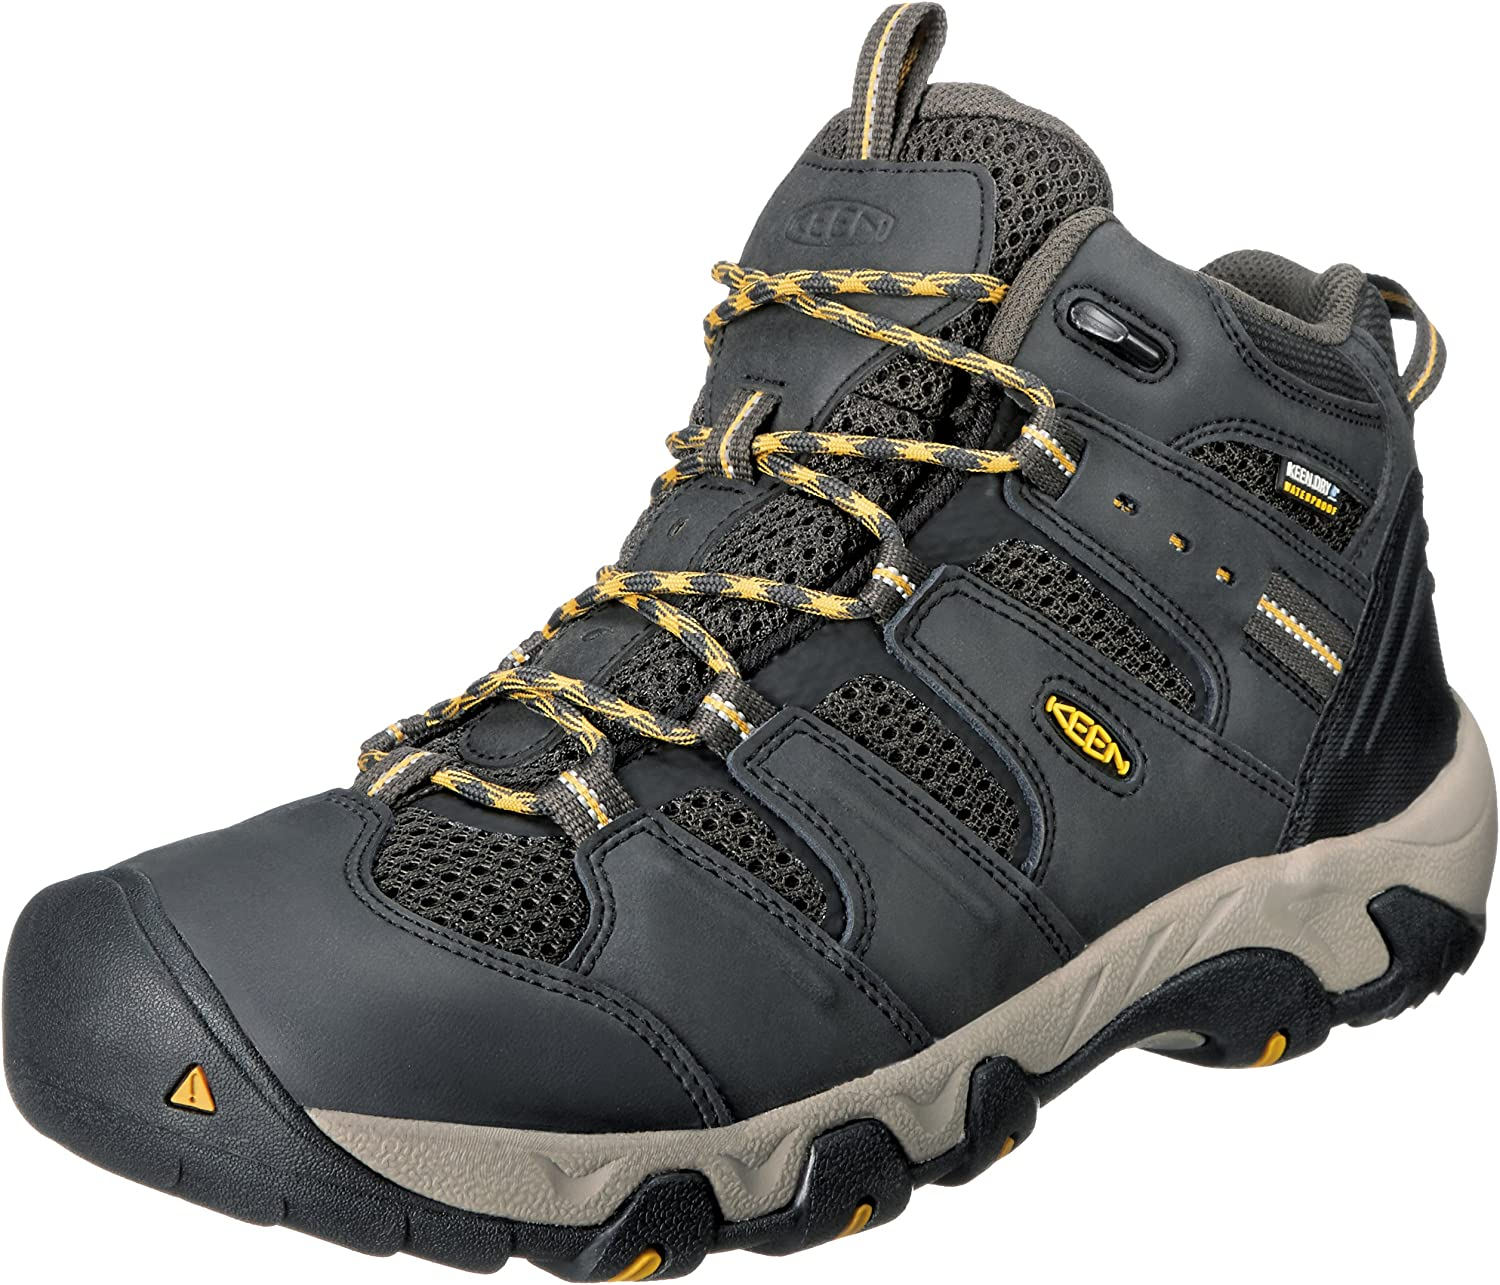 KEEN Men's Koven Mid Wp Low Rise Hiking